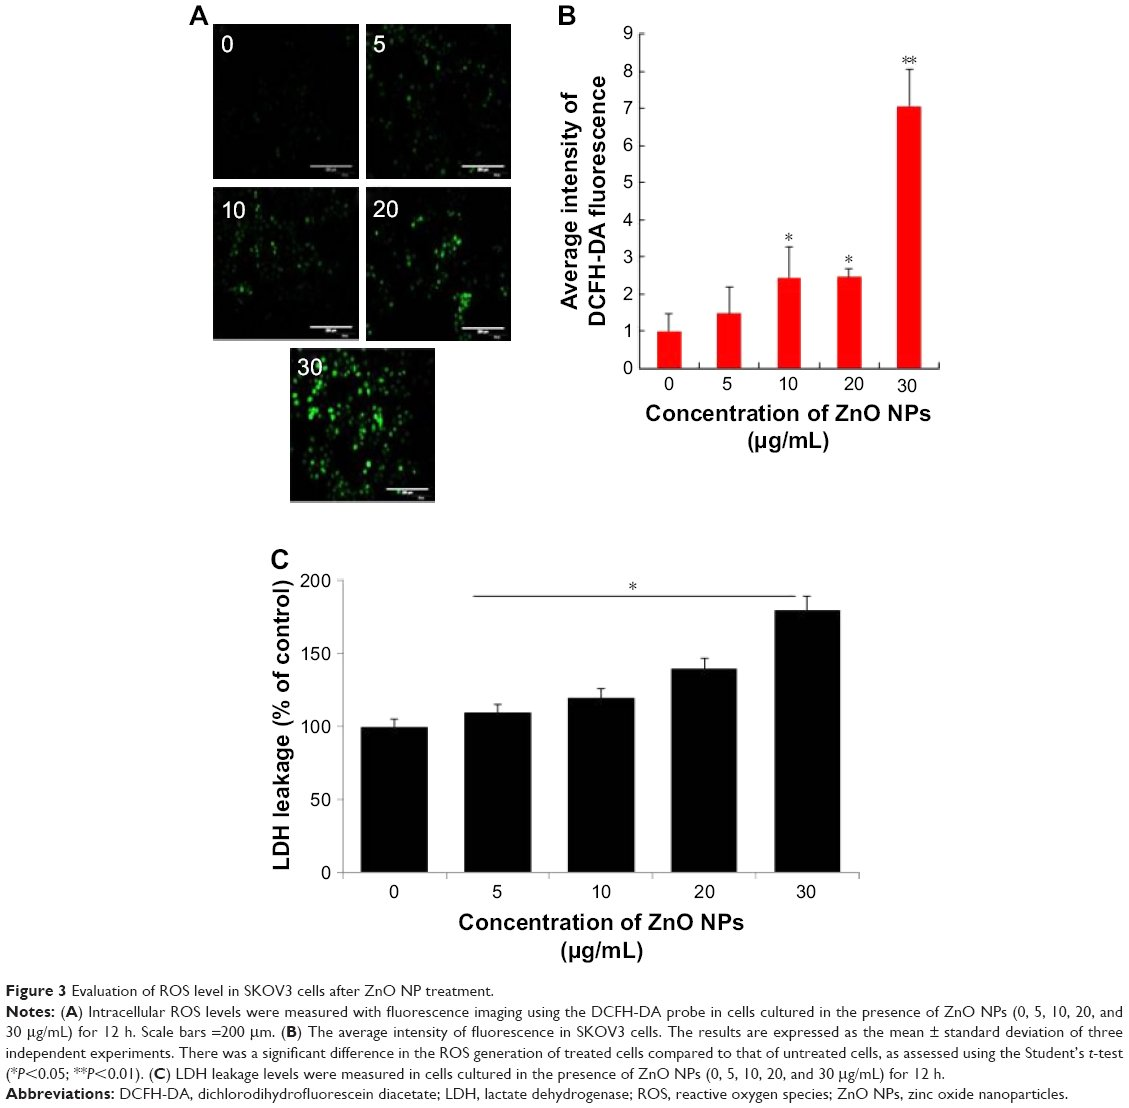 intracellular ros levels investigation For such therapy may be a new avenue of investigation in the di- involved an excess of reactive oxygen species pathway reduces intracellular ros levels.